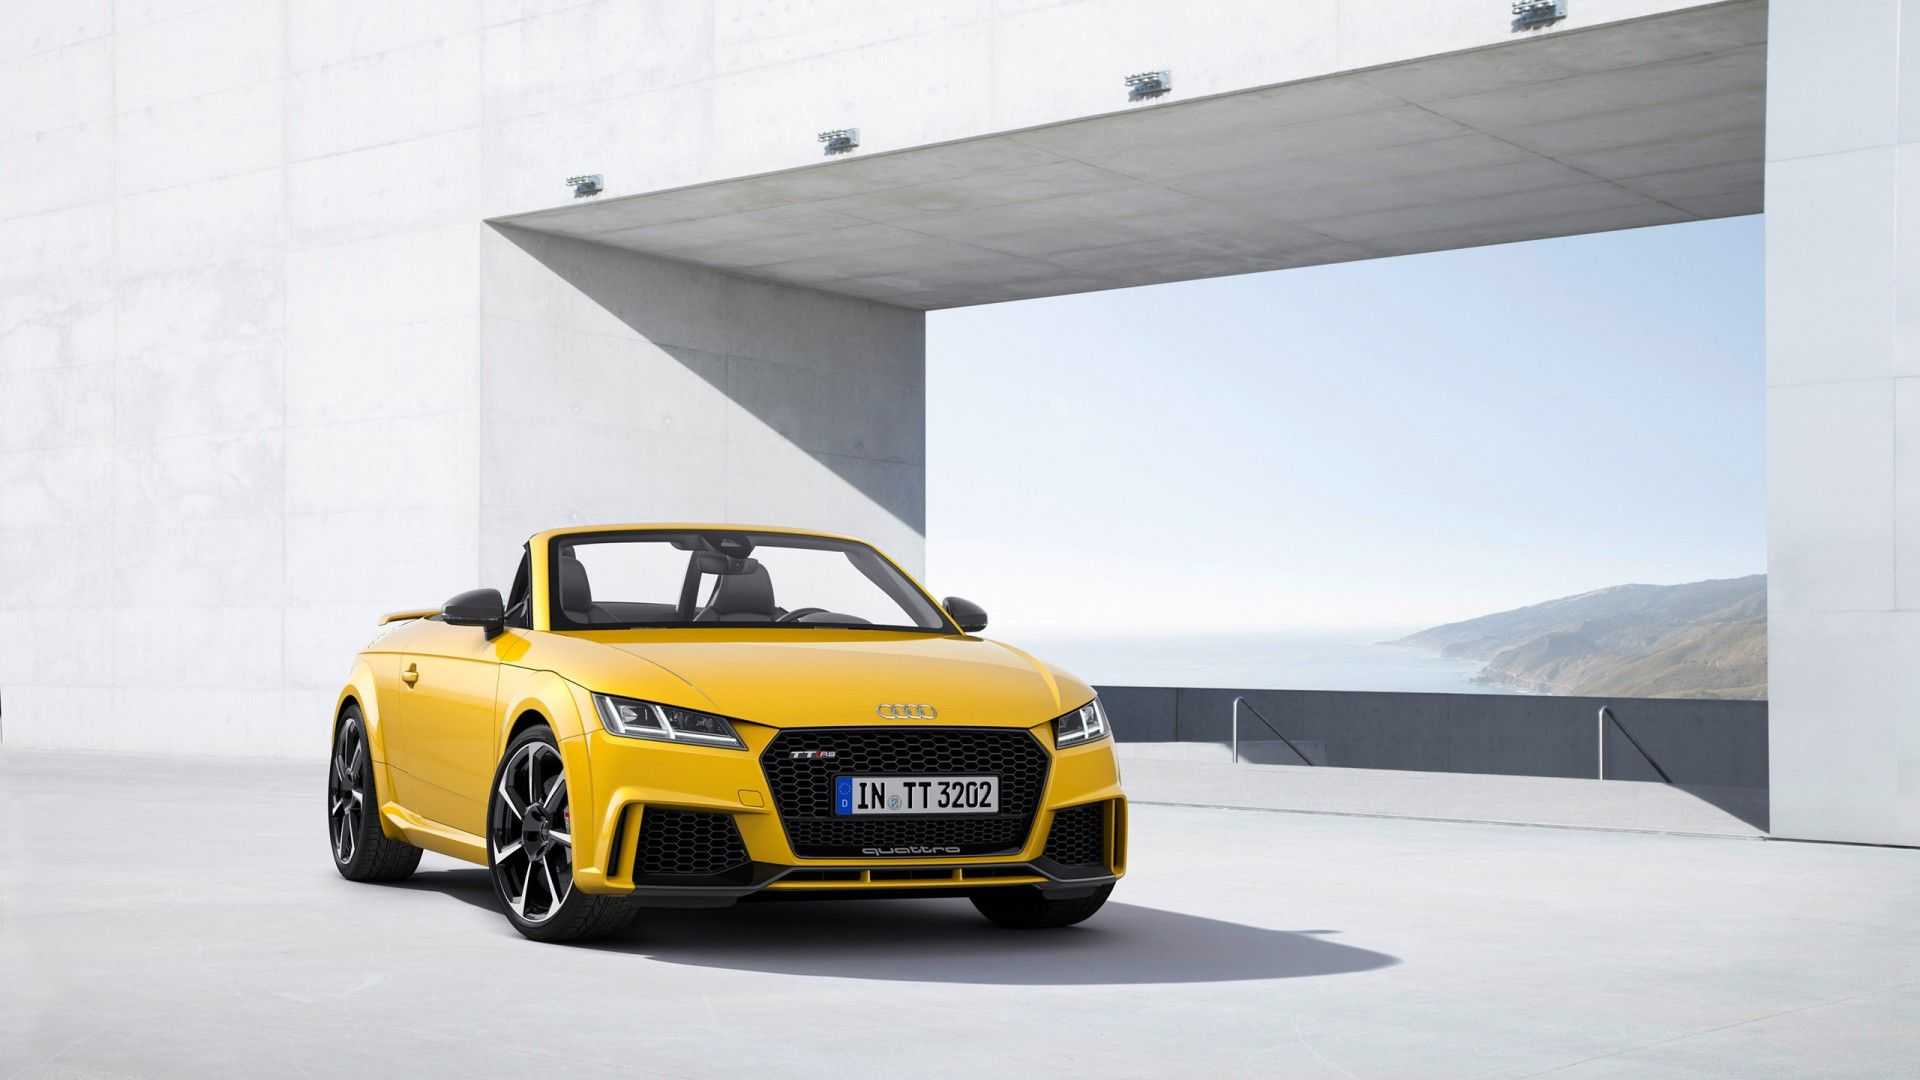 Audi 2017 Tt Rs Roadster Wallpaper Audi Tt Roadster 2017 Audi